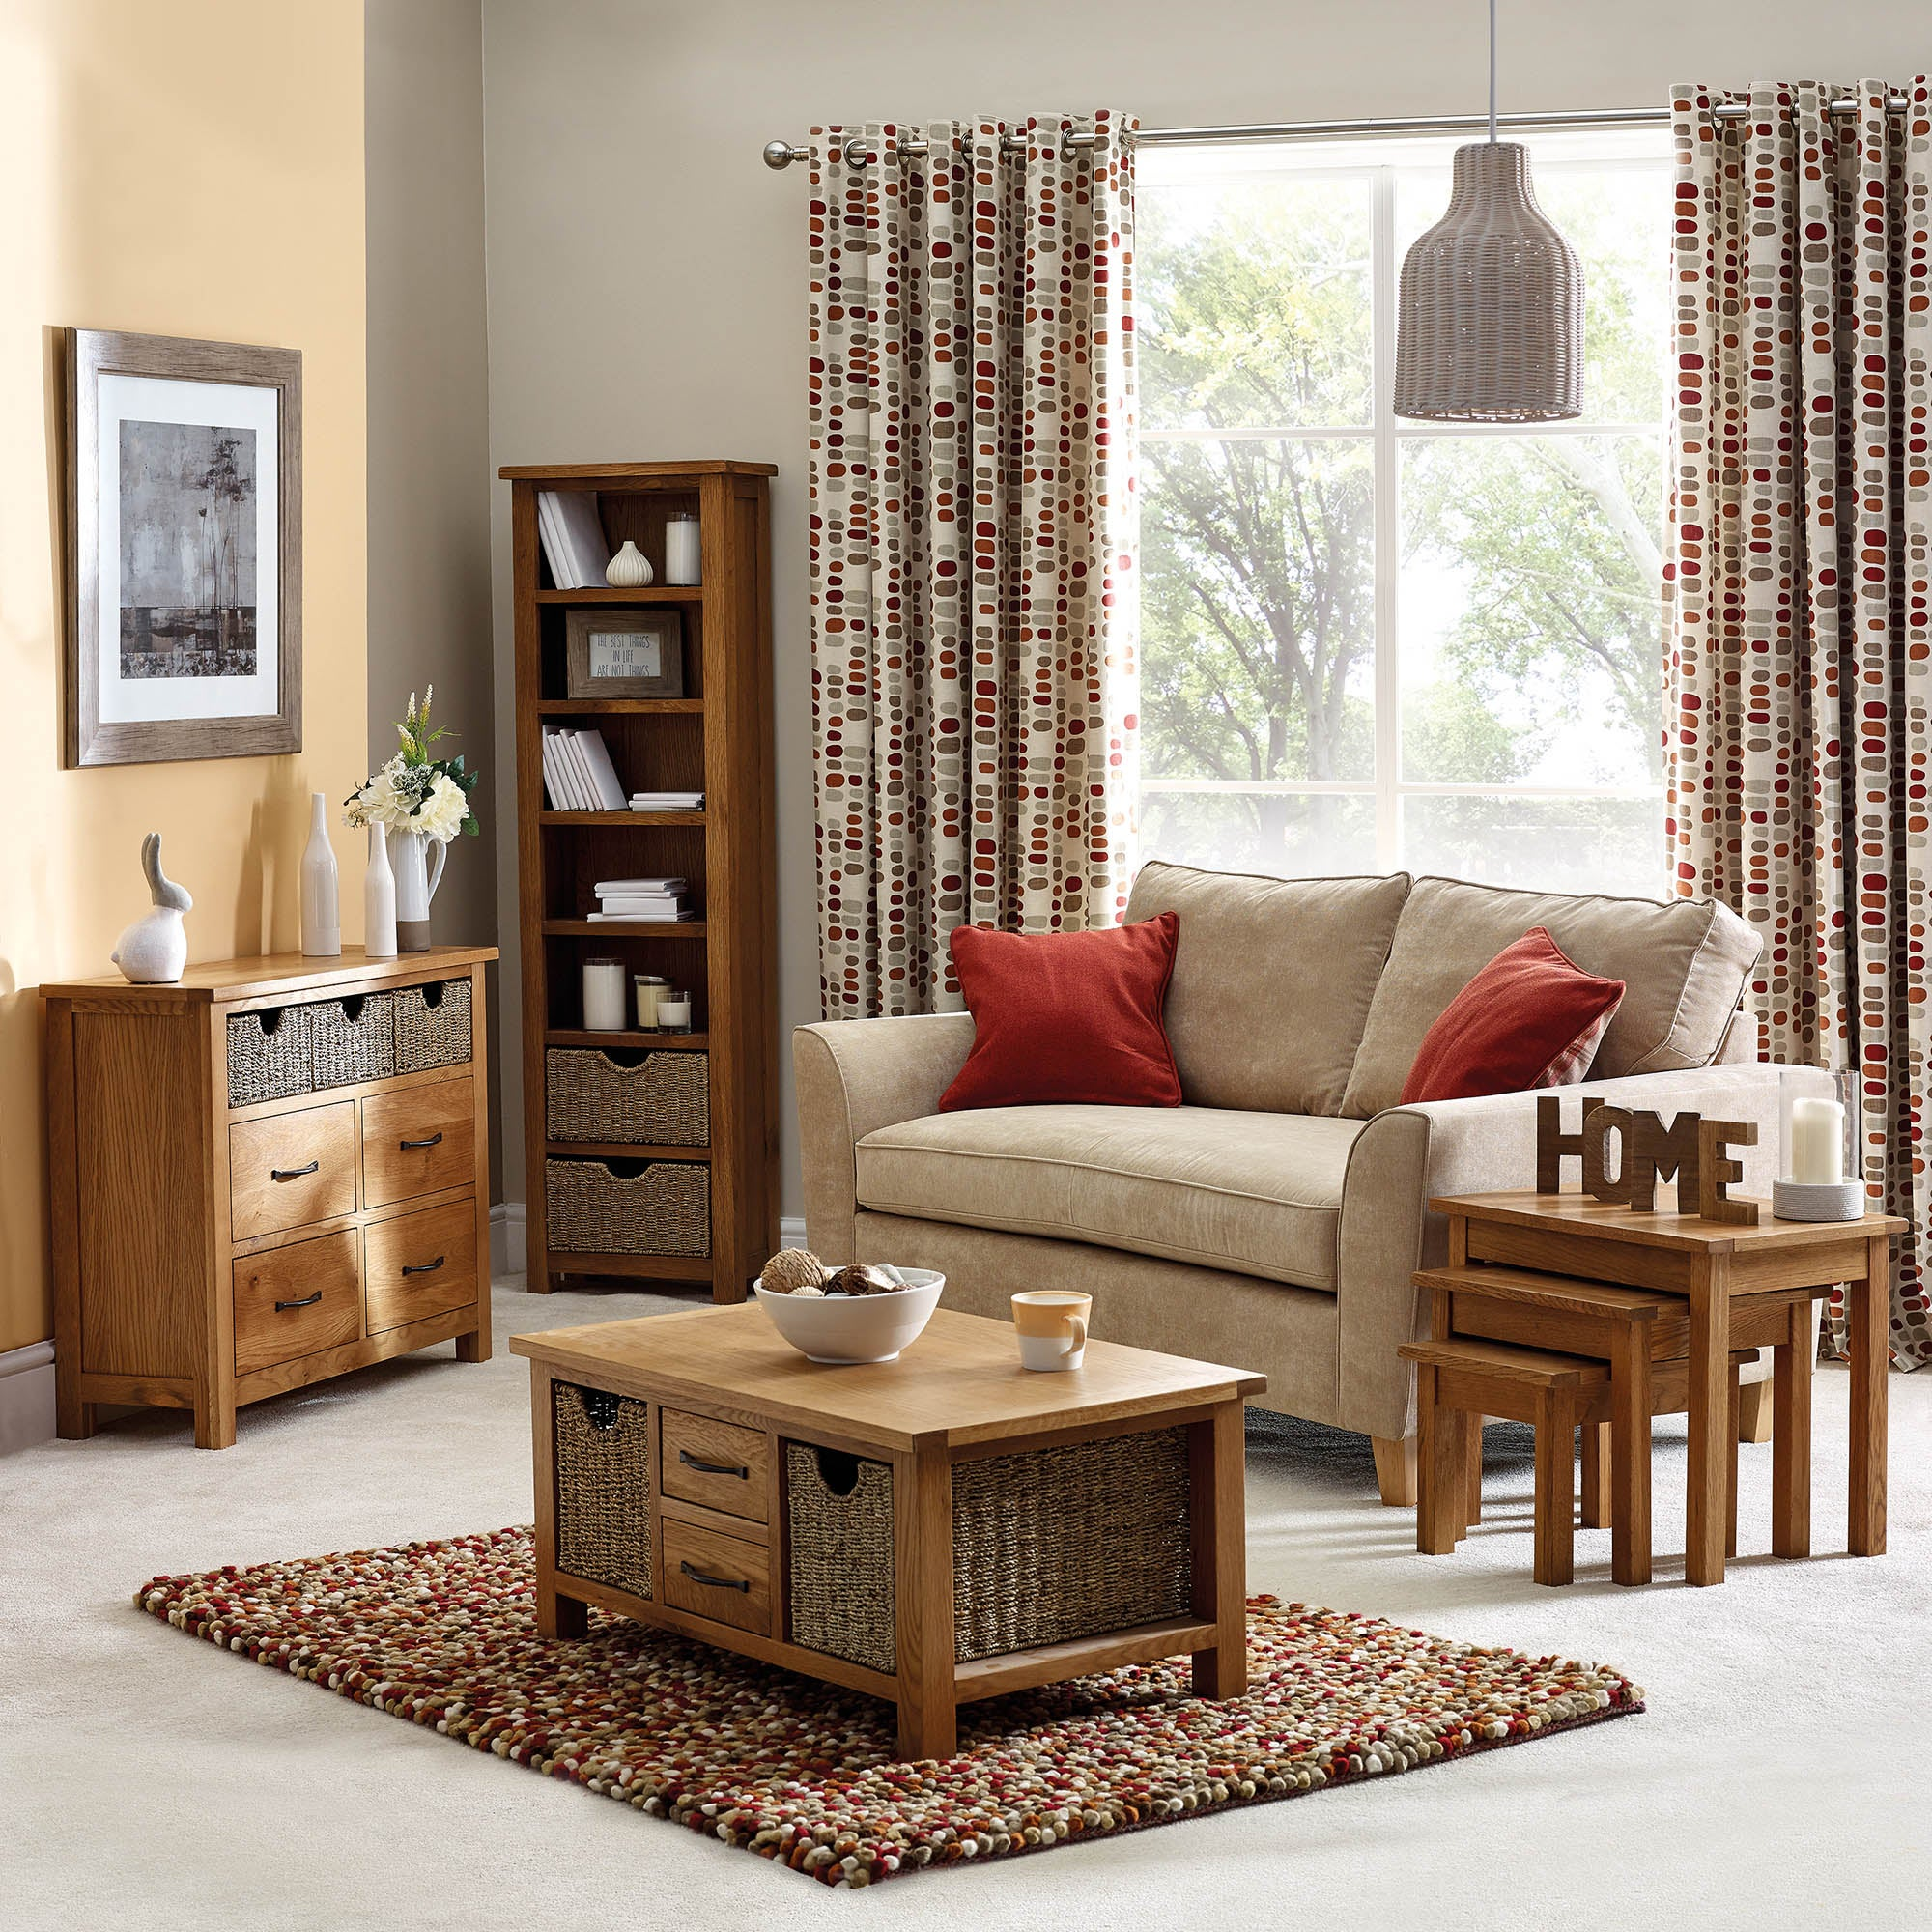 Sidmouth Oak Living Room Collection